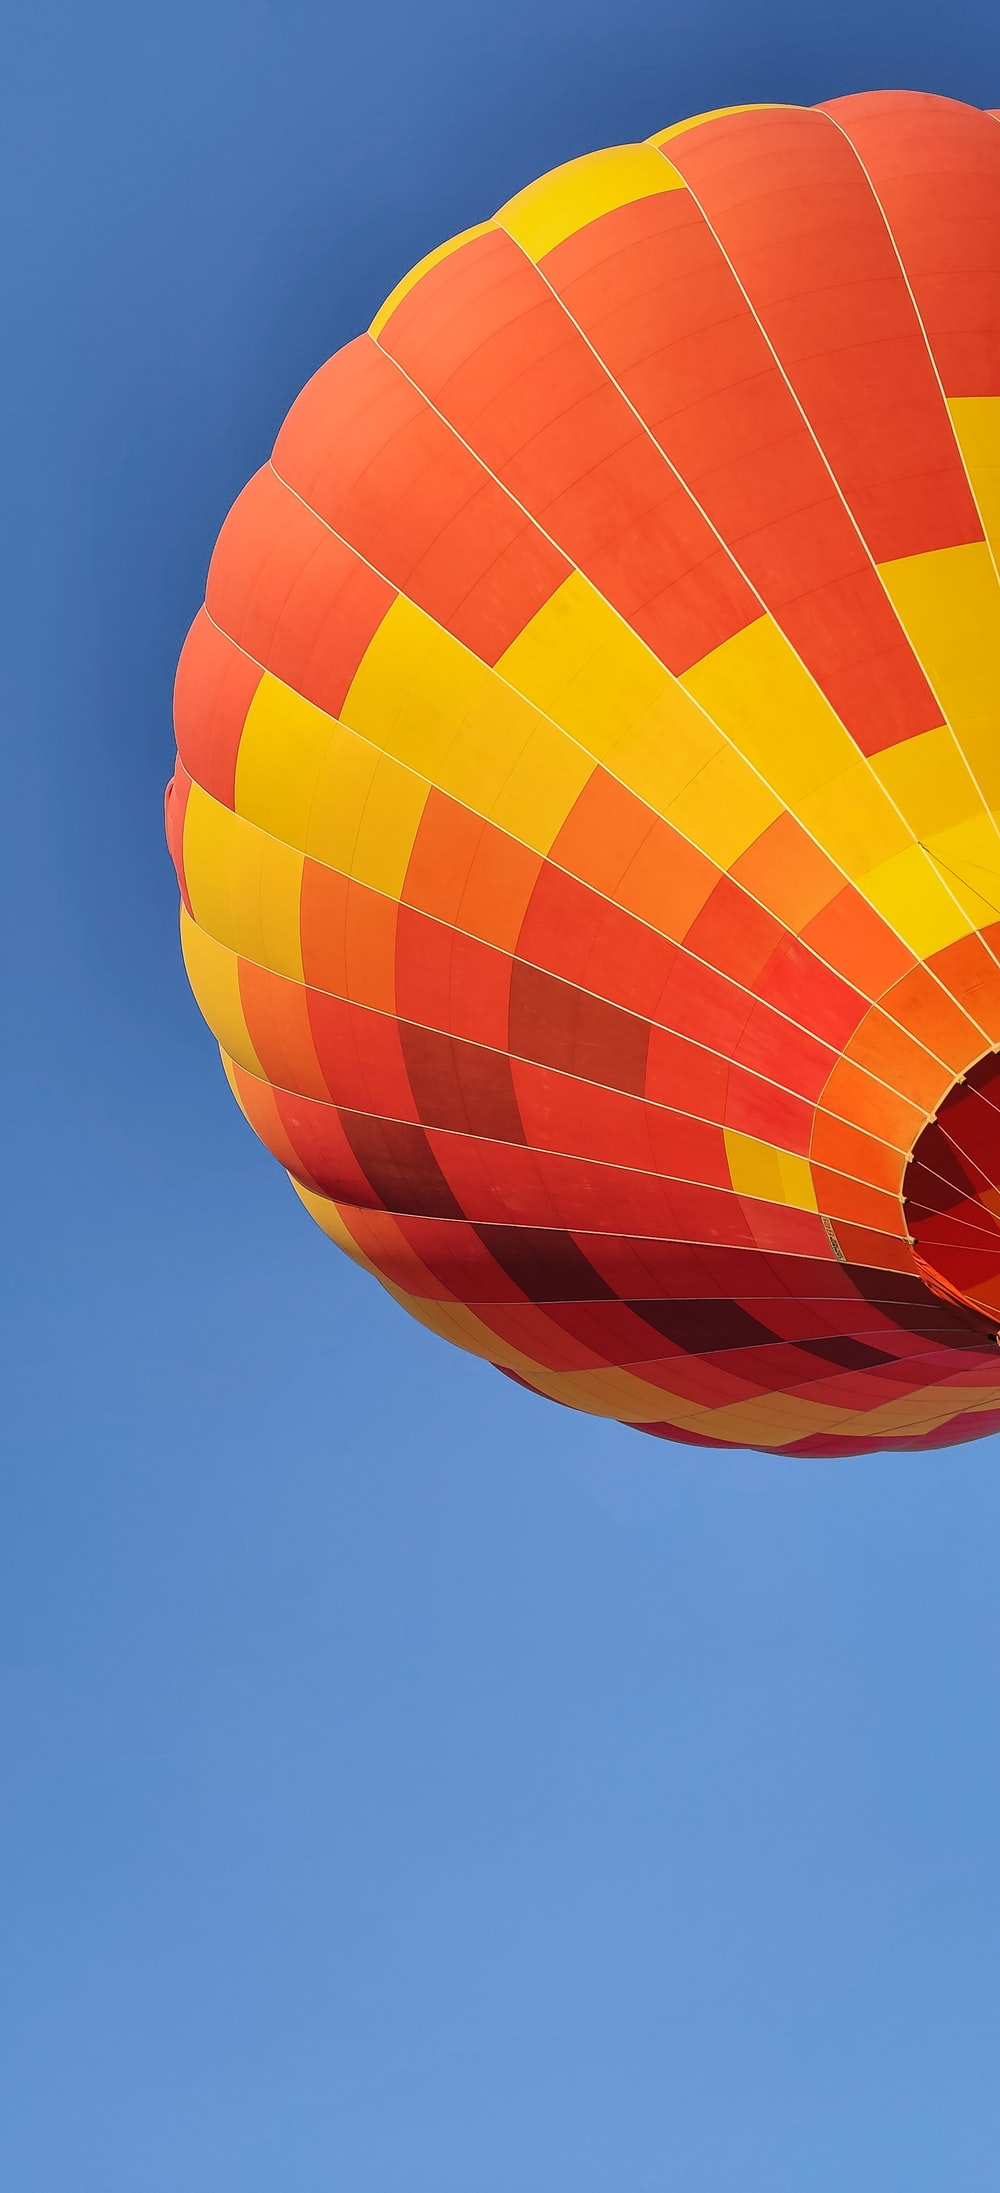 red and yellow hot air ballooning during daytime